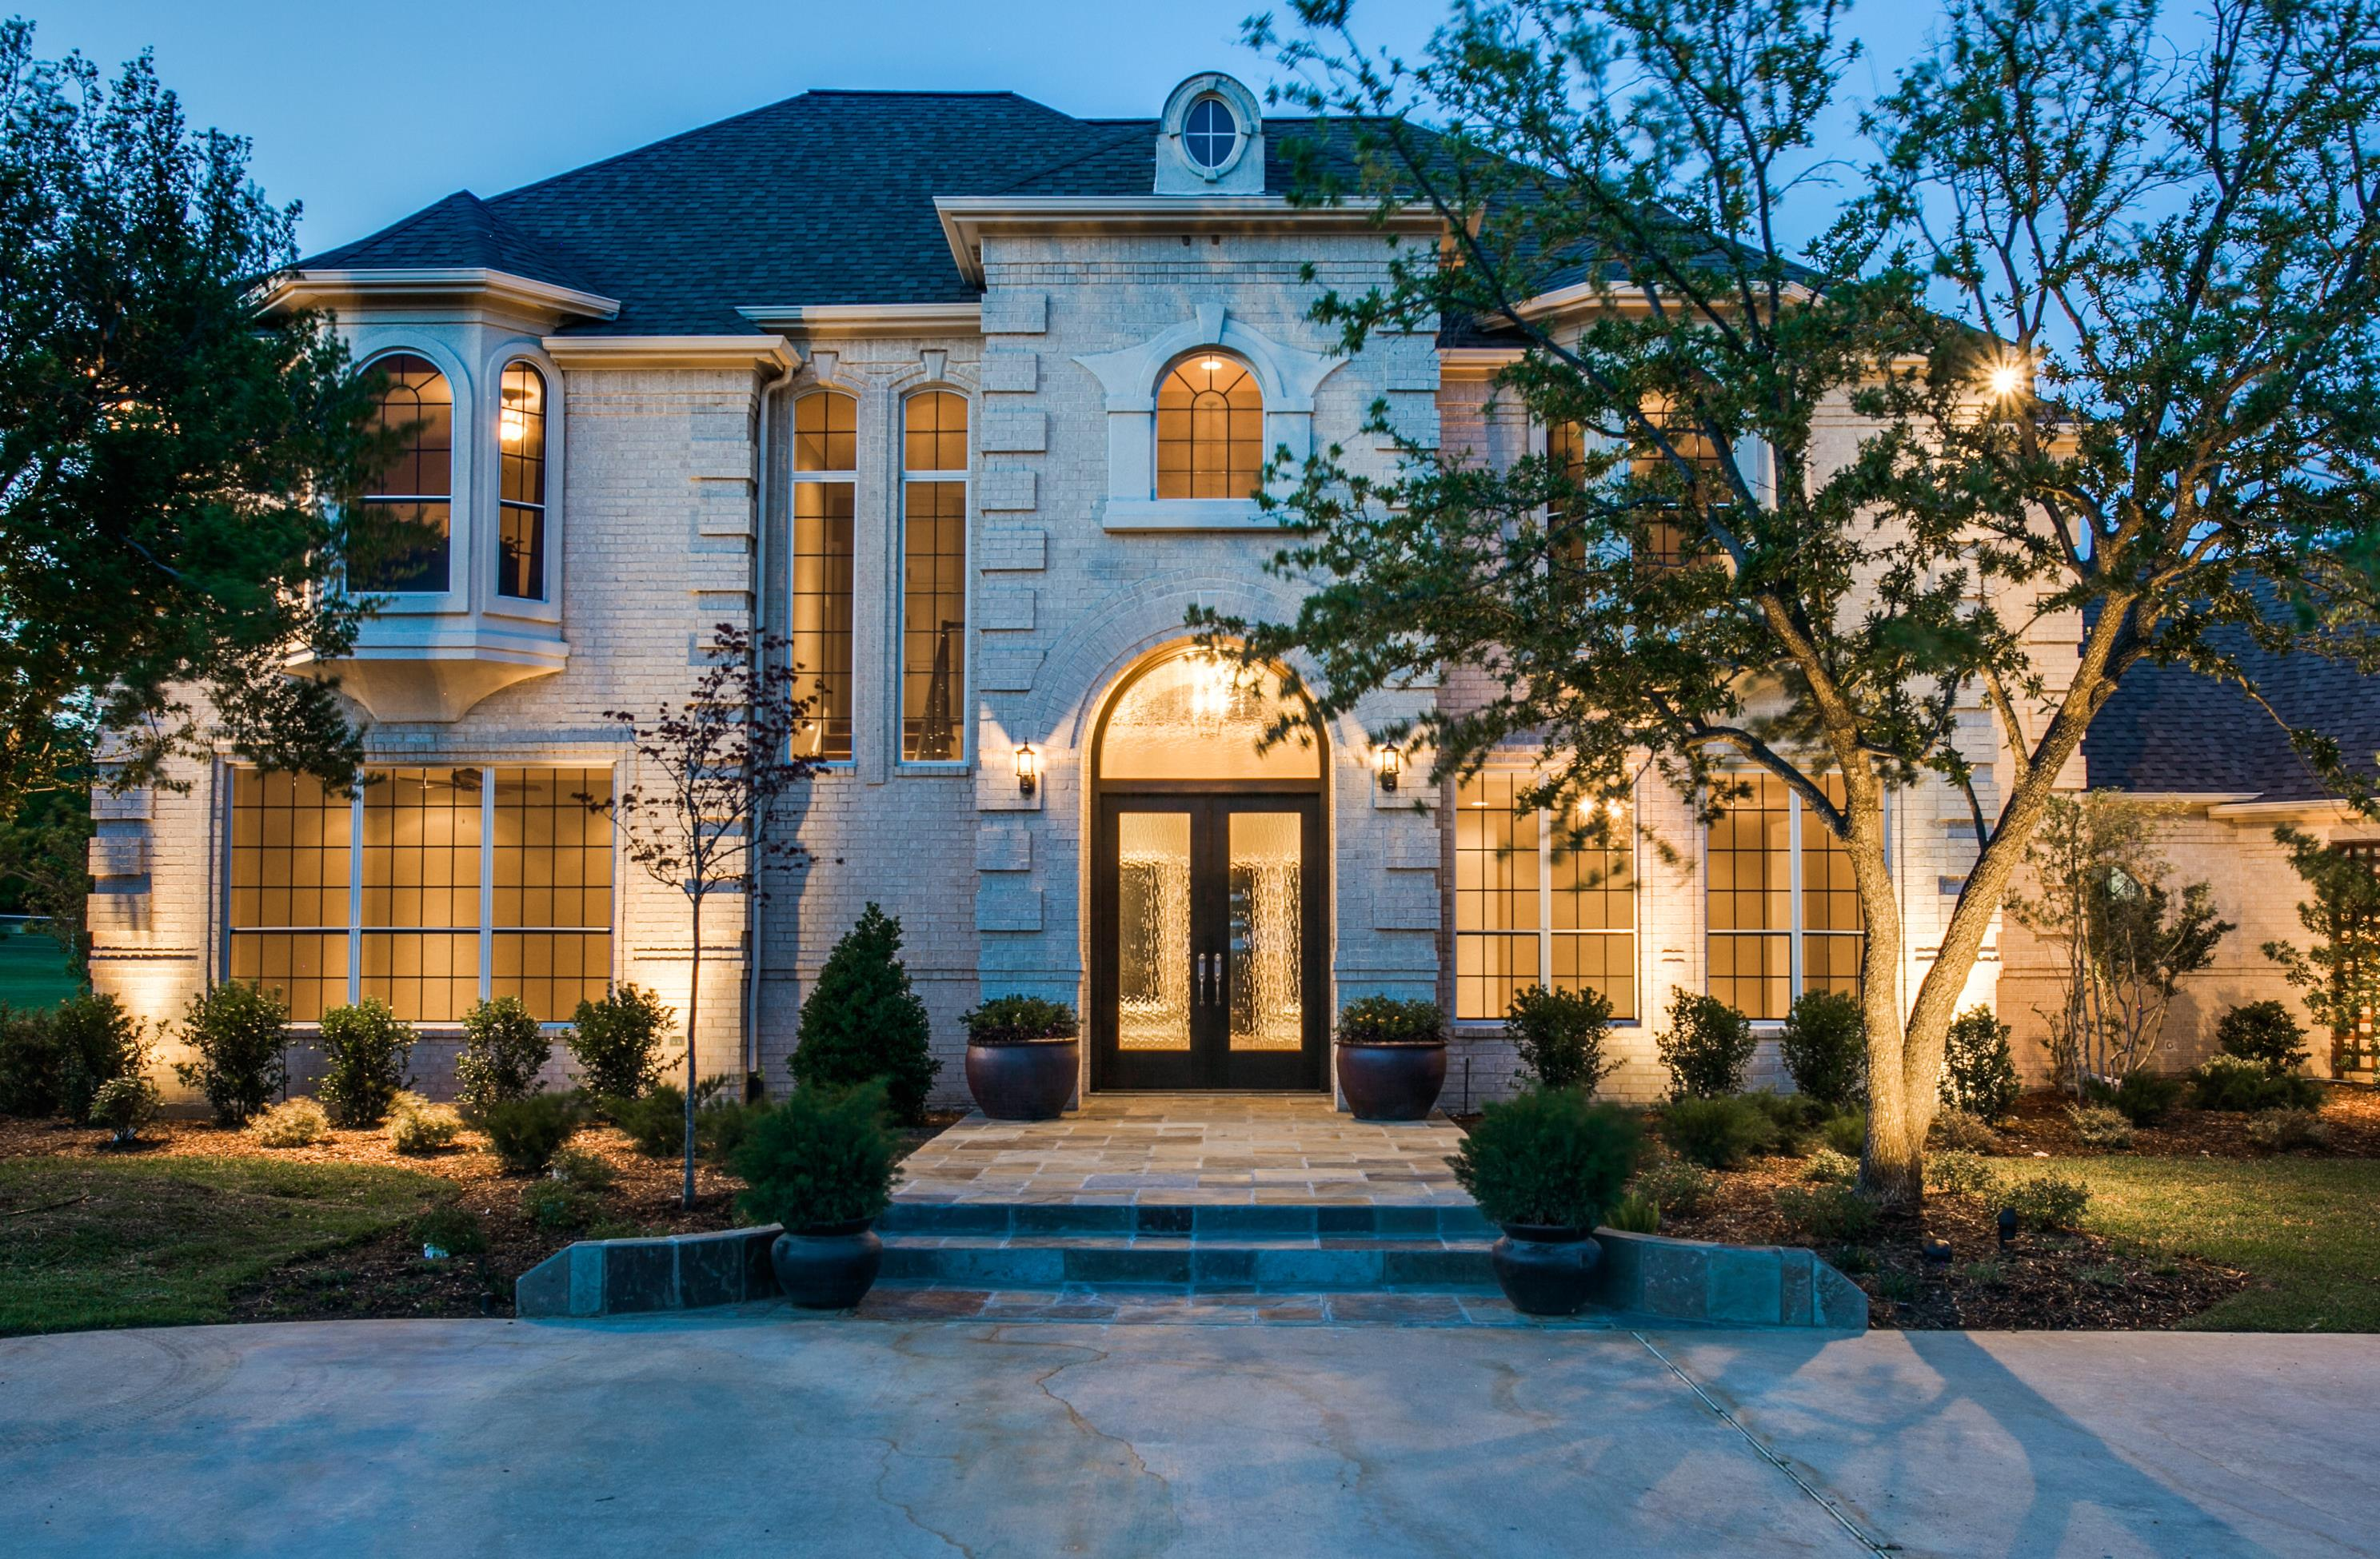 Abbott House Sumner Bed Breakfast All Cities Realty Burleson Real Estate Expert Top Real Estate Agent